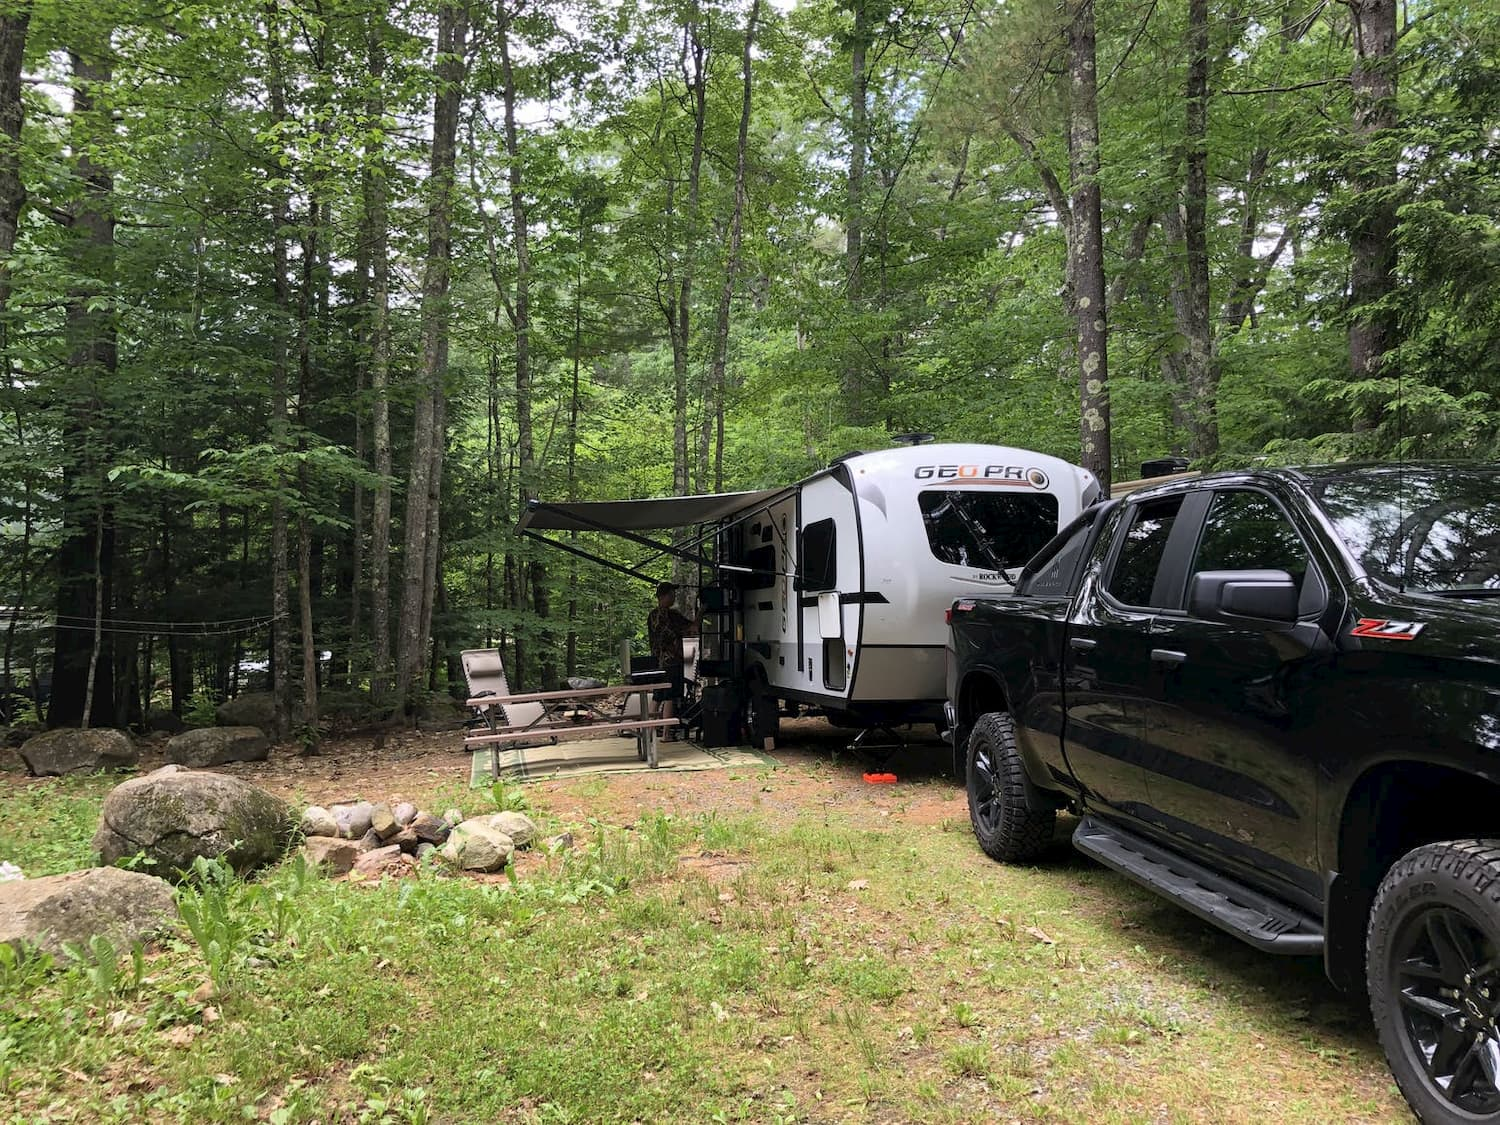 truck with pull-behind parked at forested campsite